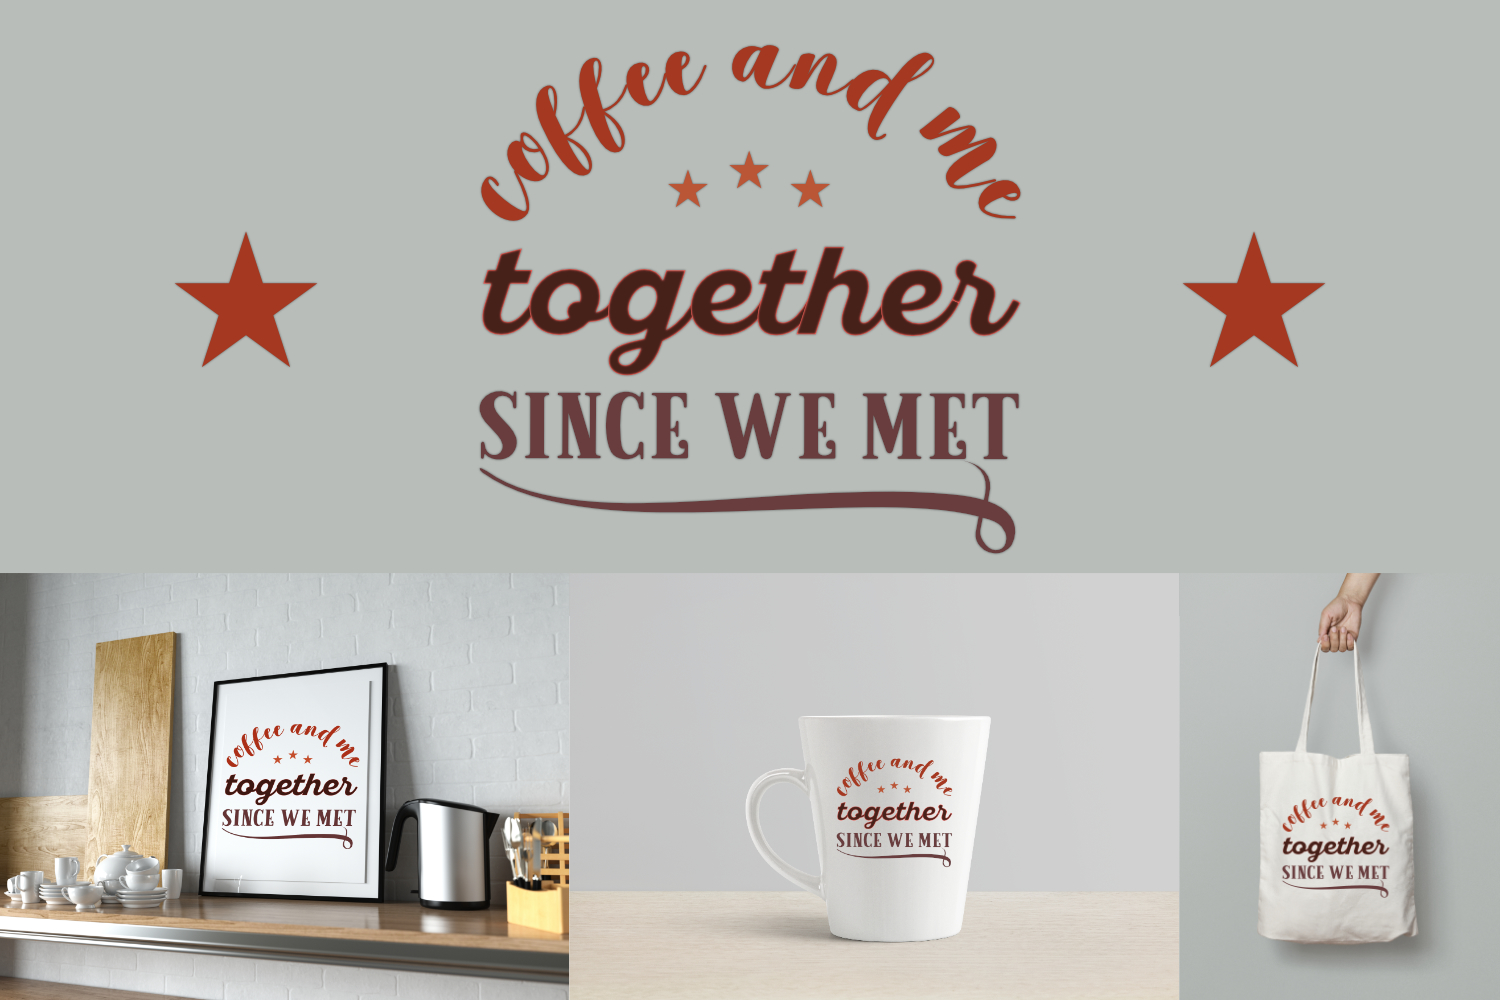 Coffee And Me Together Since We Meet example image 1